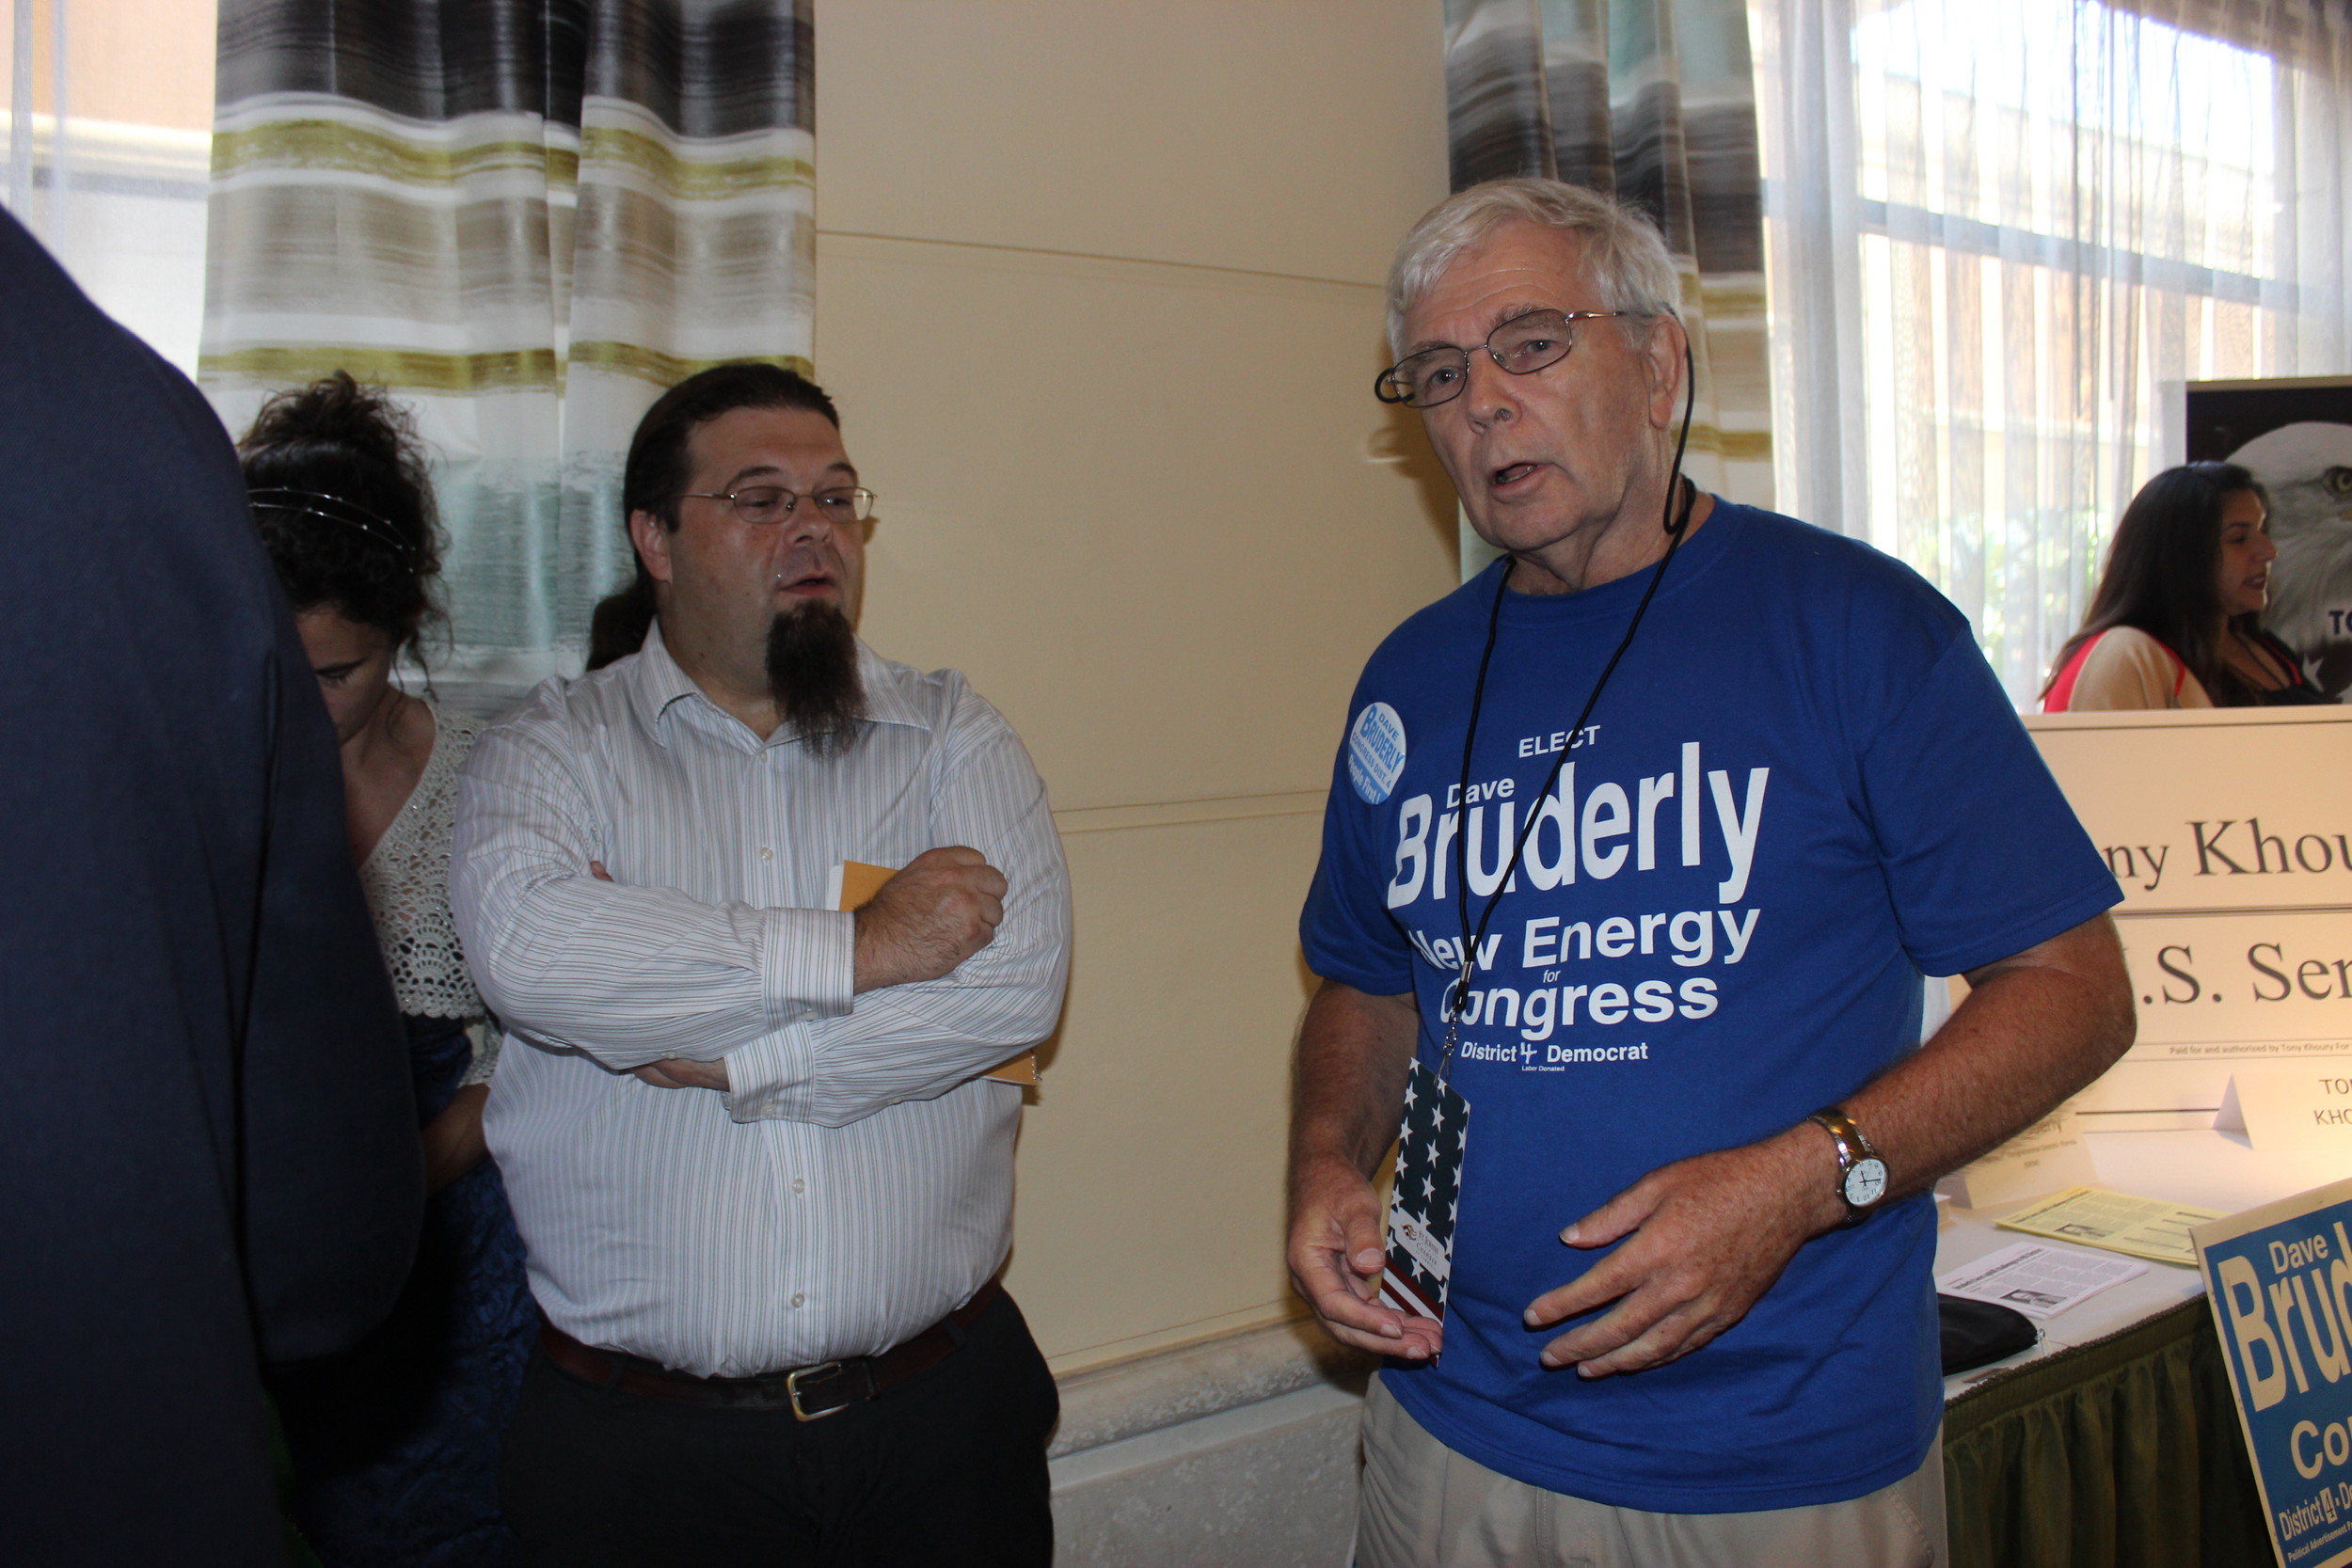 Democratic congressional candidate Dave Bruderly talks with local Democrats.